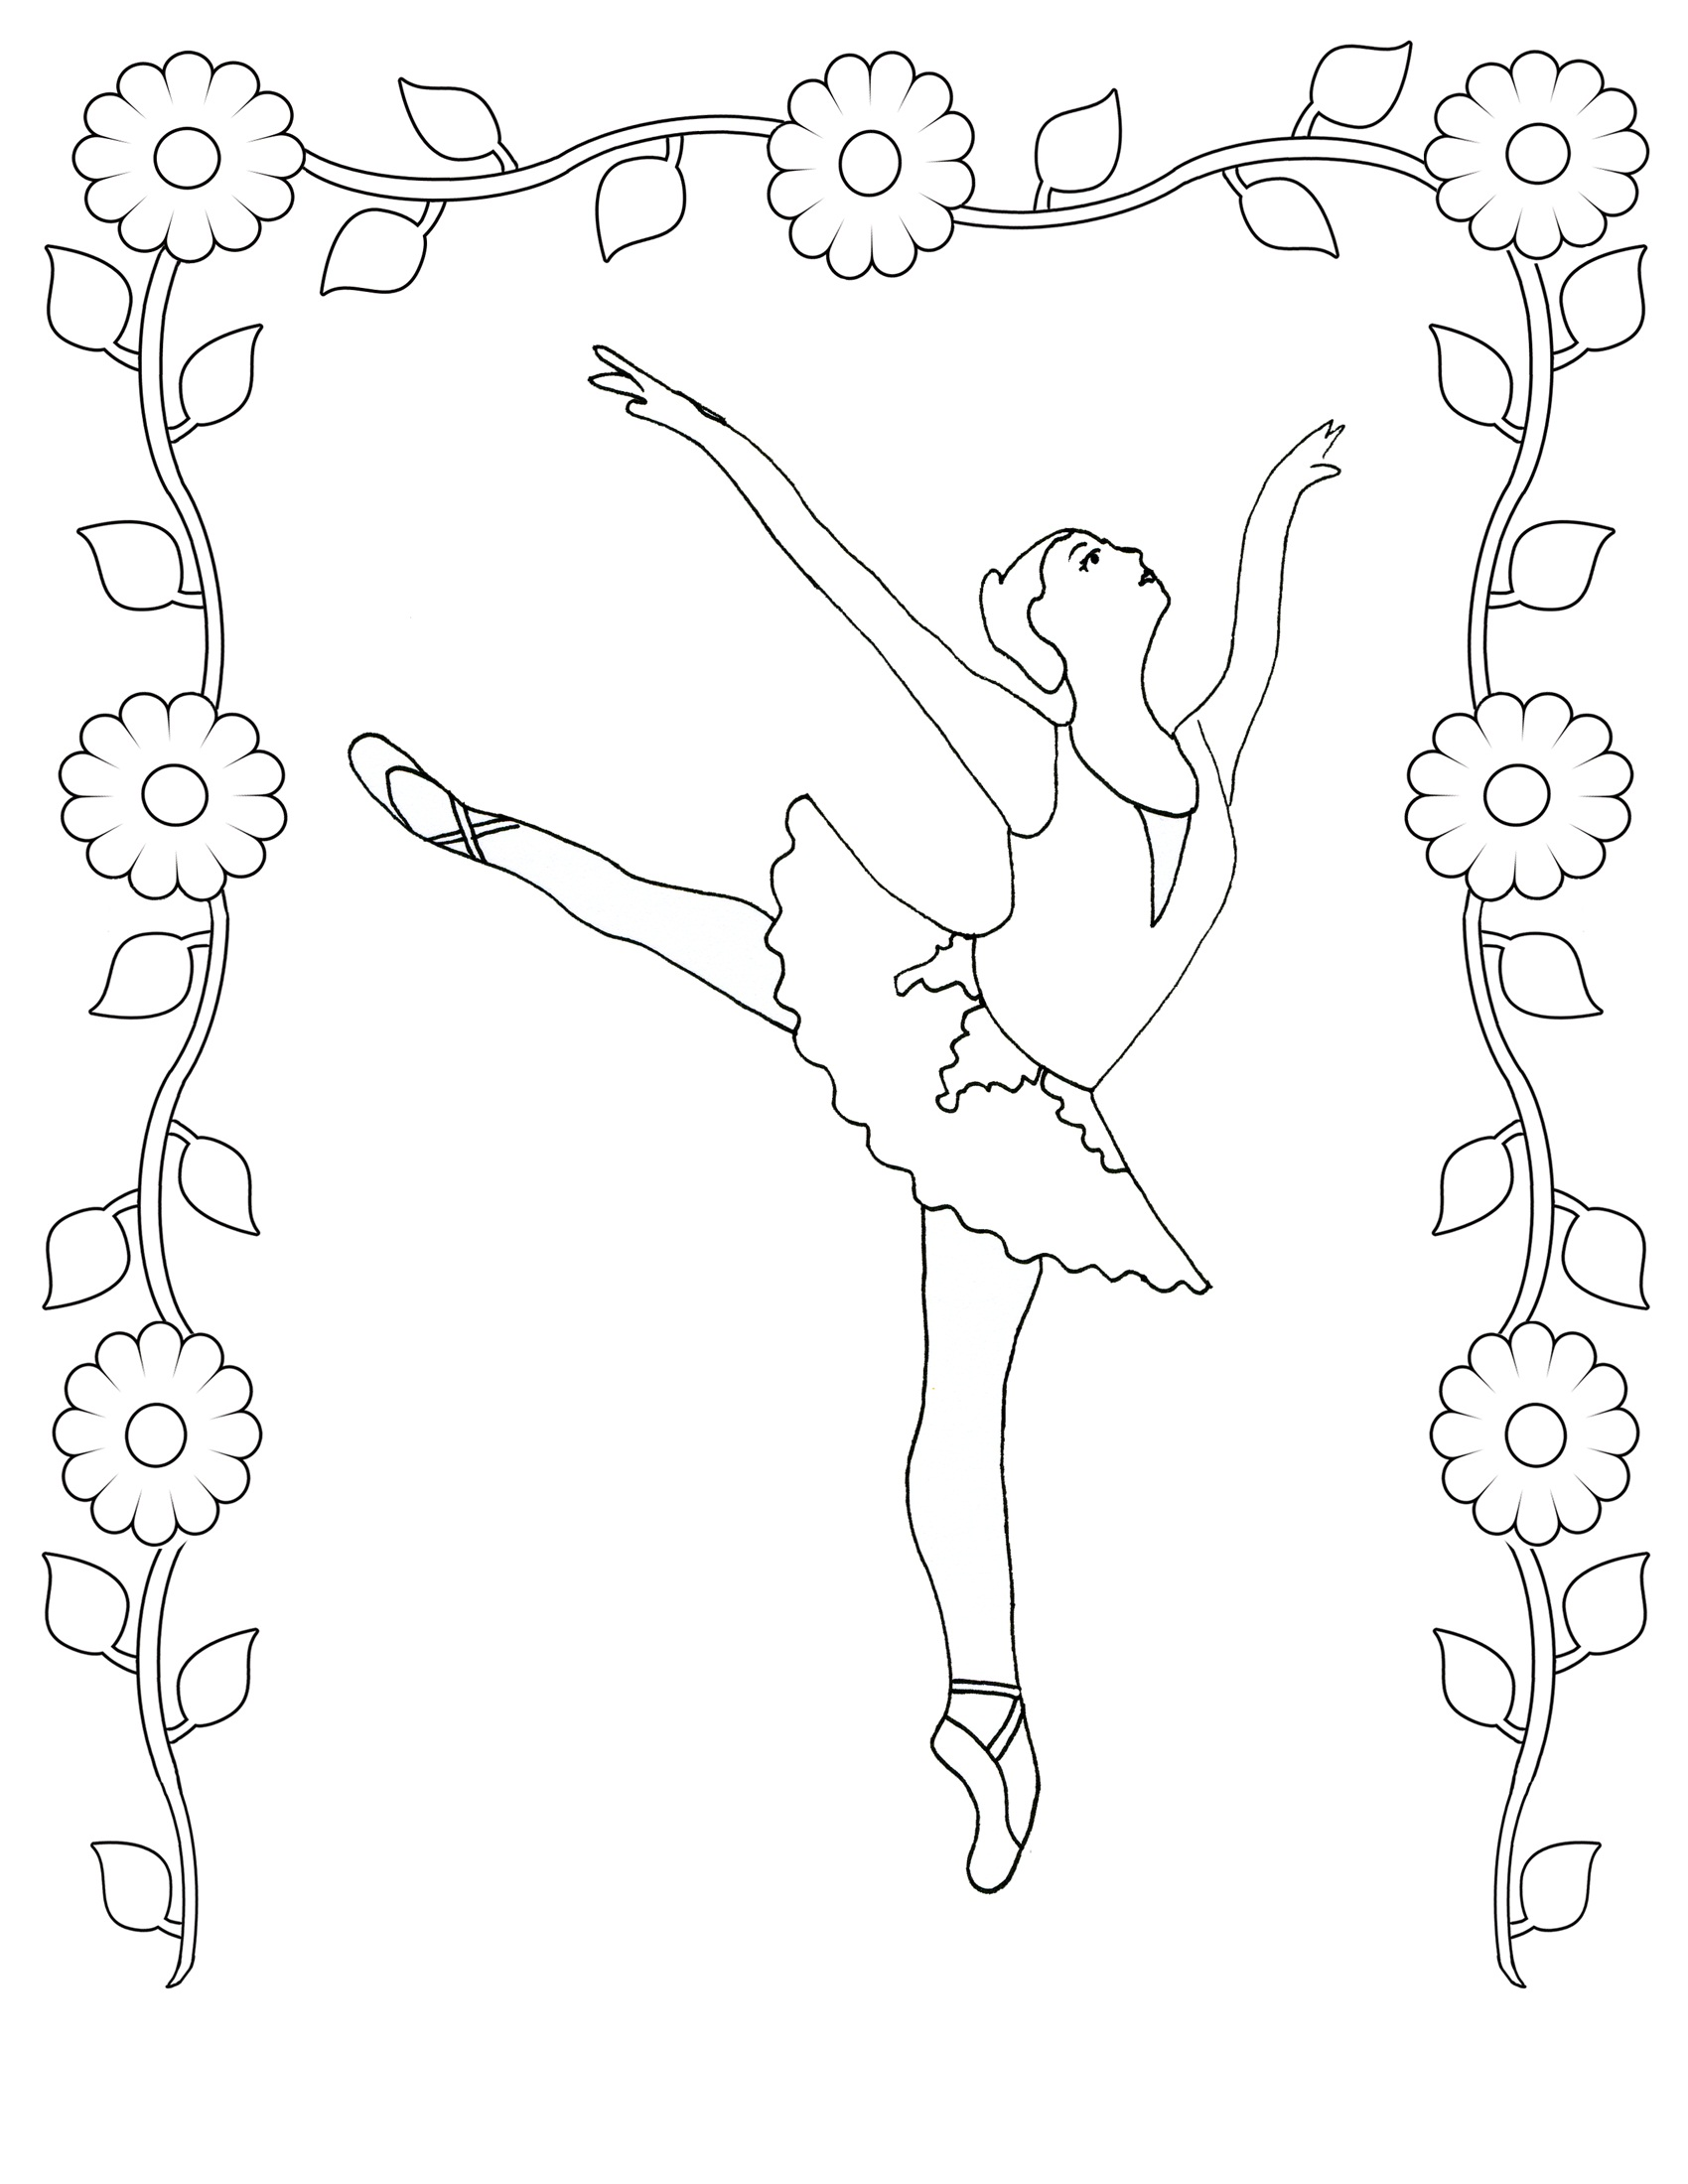 kids dancing coloring pages - photo#7